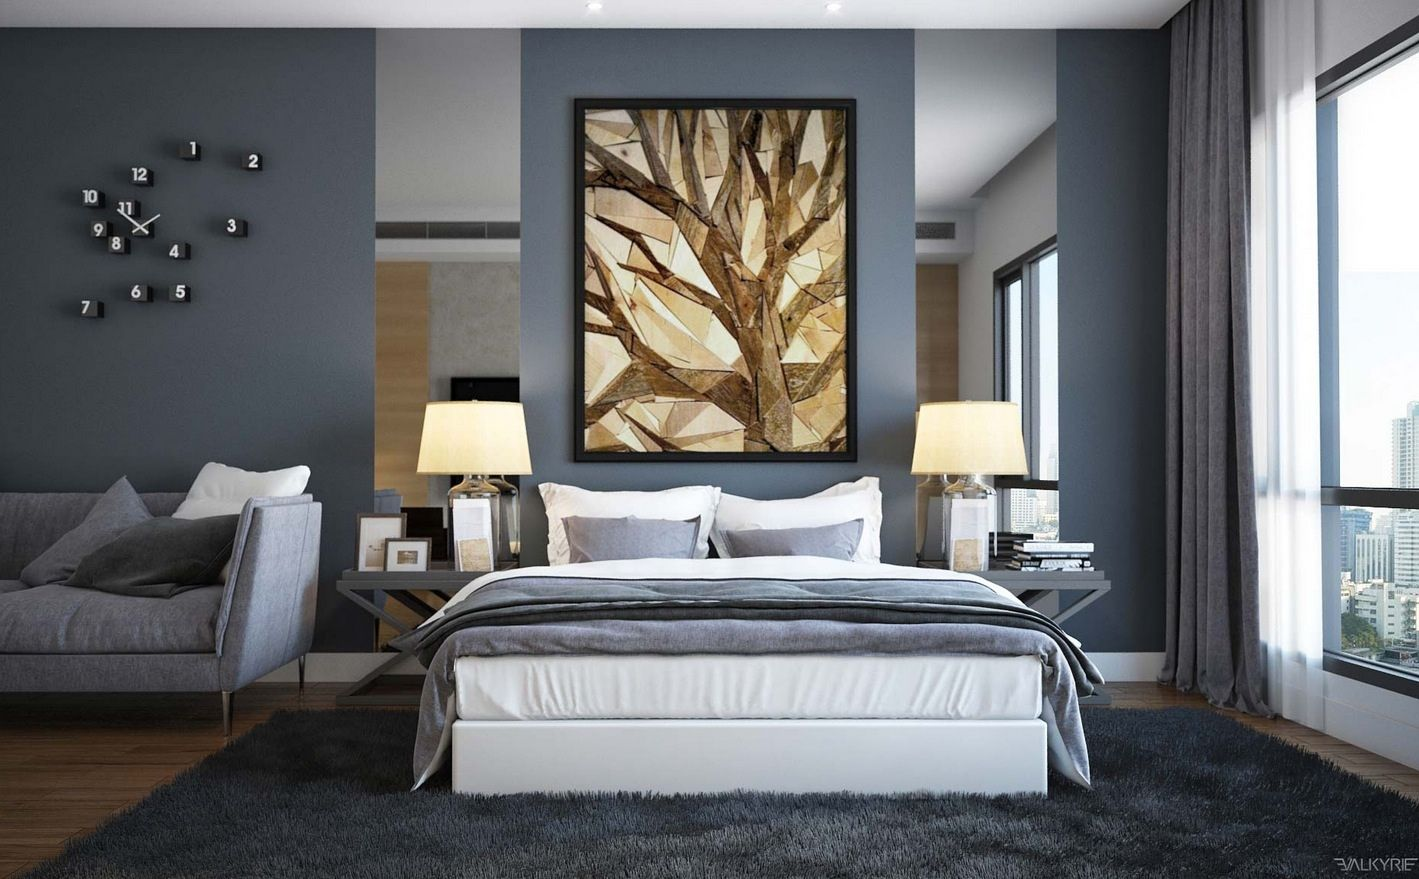 Enchanting modern bedroom design in slate gray interior palette by valkyrie studio with lovely - Images of bed design ...